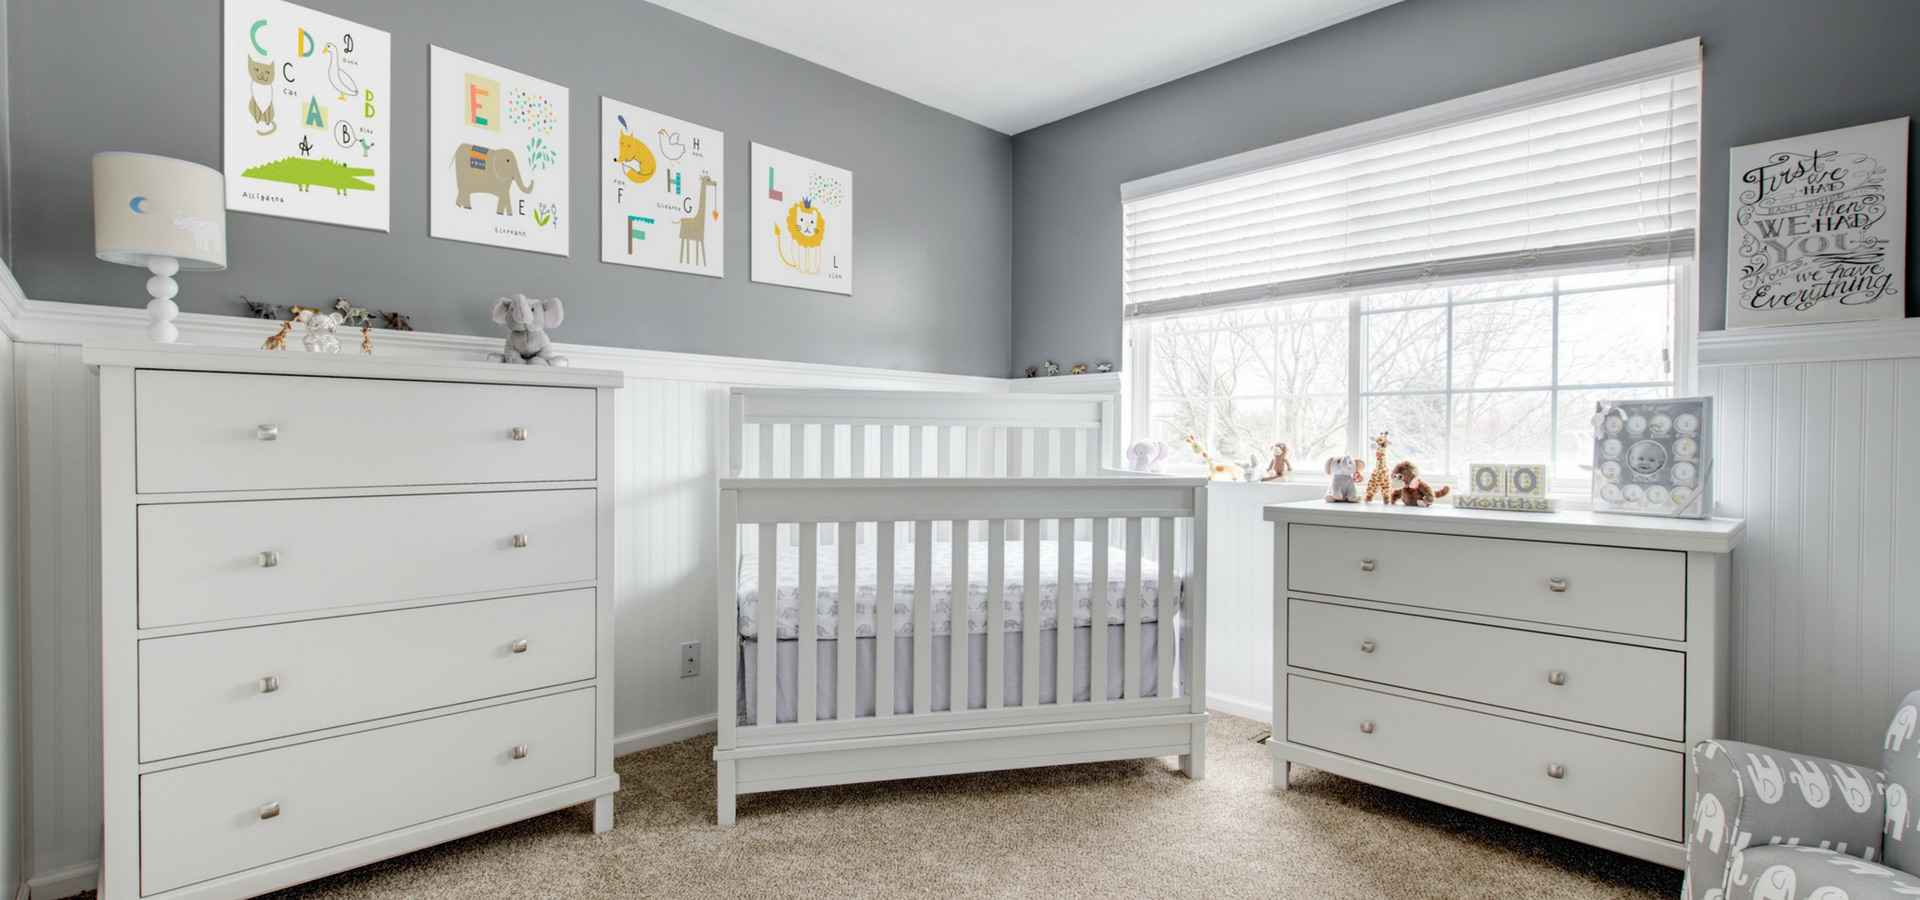 Decorating Your Baby S Room On A Budget